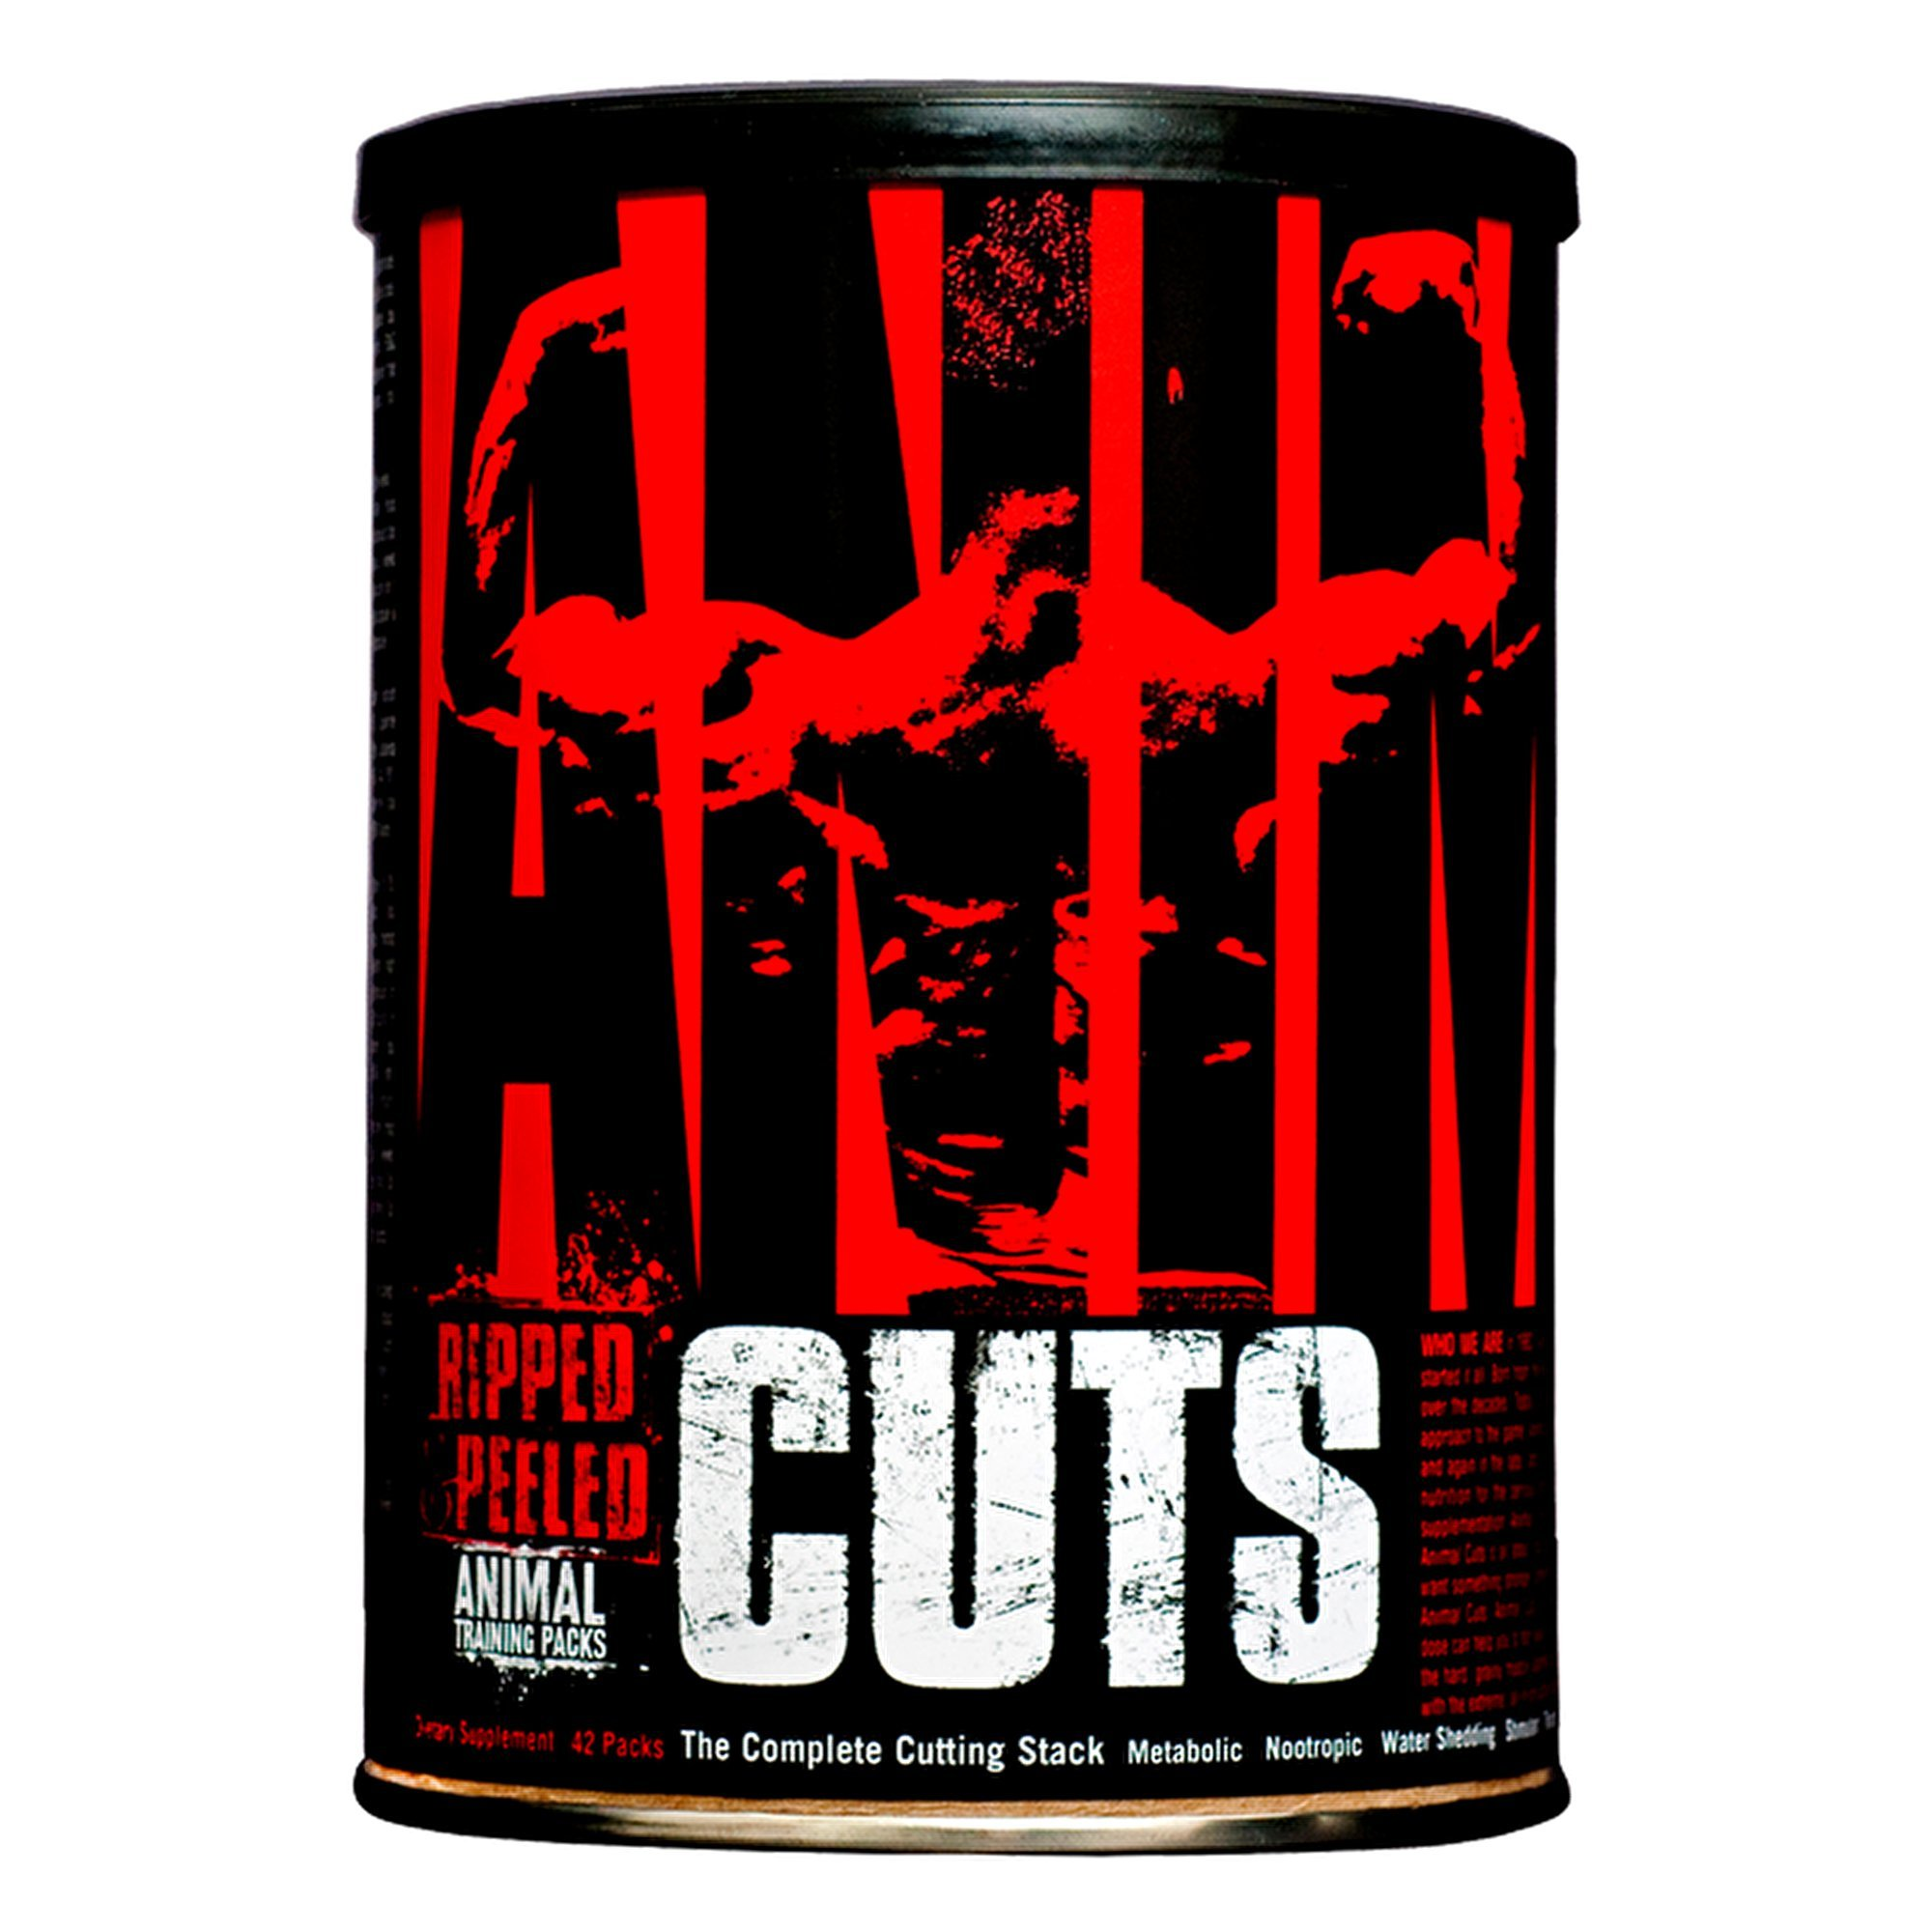 Animal Cuts - All-in-one Complete Fat Burner Supplement with Thermogenic and Metabolism Support - Energy Booster, Raspberry Ketones and Thyroid Complex - 42 Packs by Animal